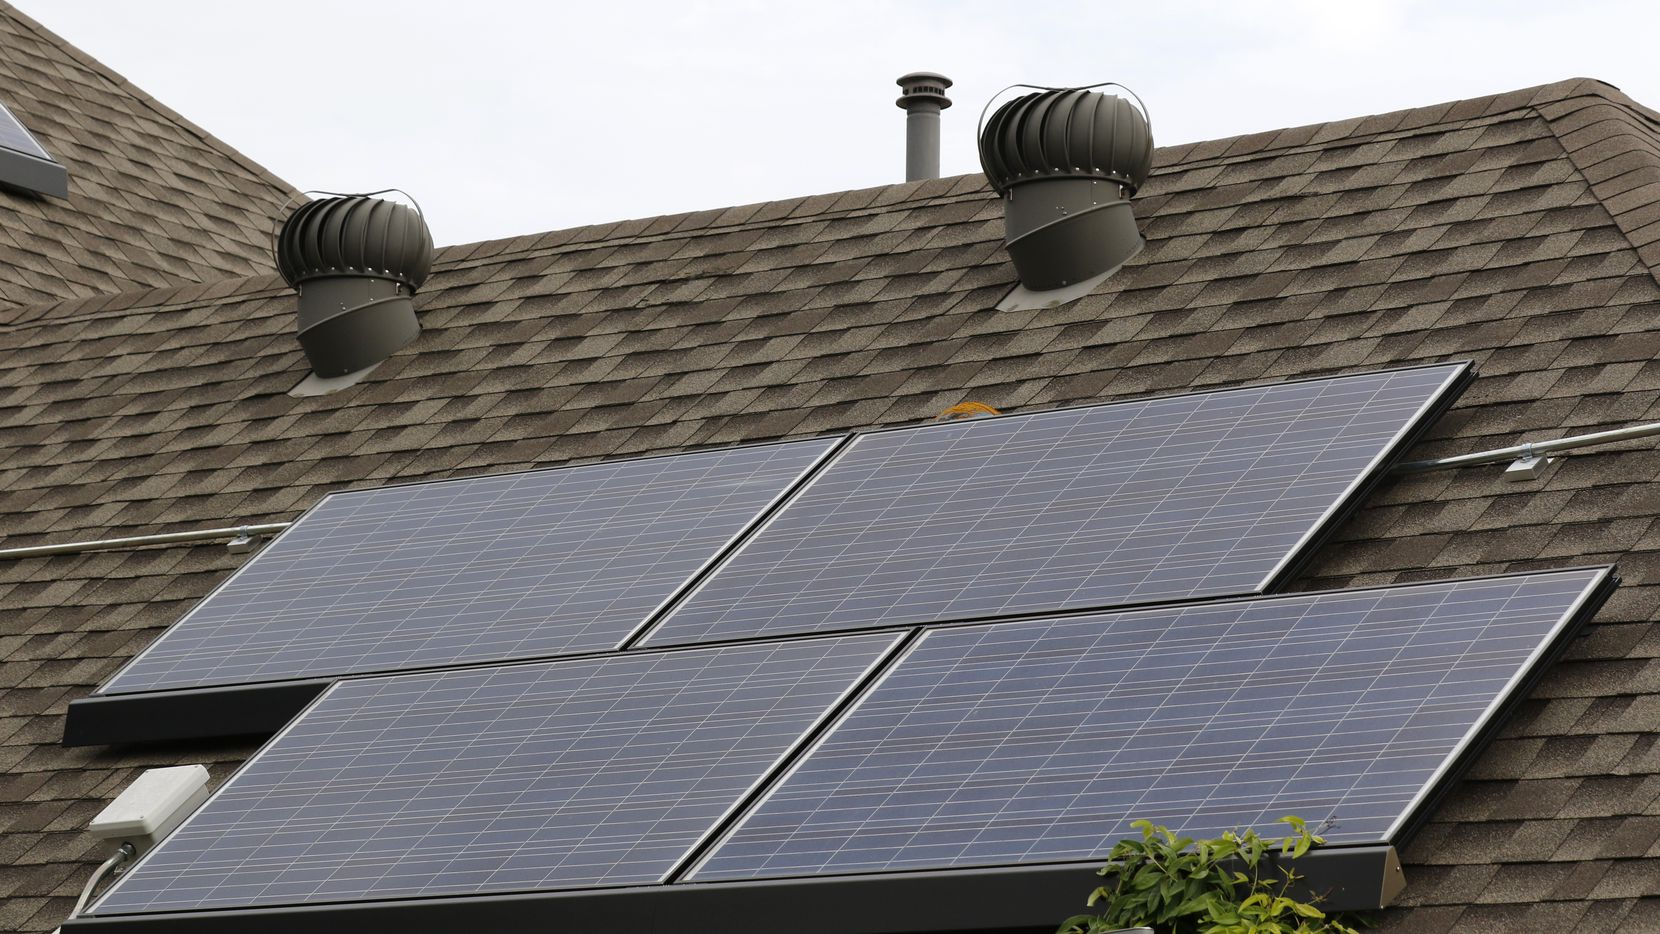 Homeowners with solar panels would have to pay a minimum fee of about $40 a month for access to the grid under a proposal by Oncor Electric Delivery Co. (David Woo/The Dallas Morning News)